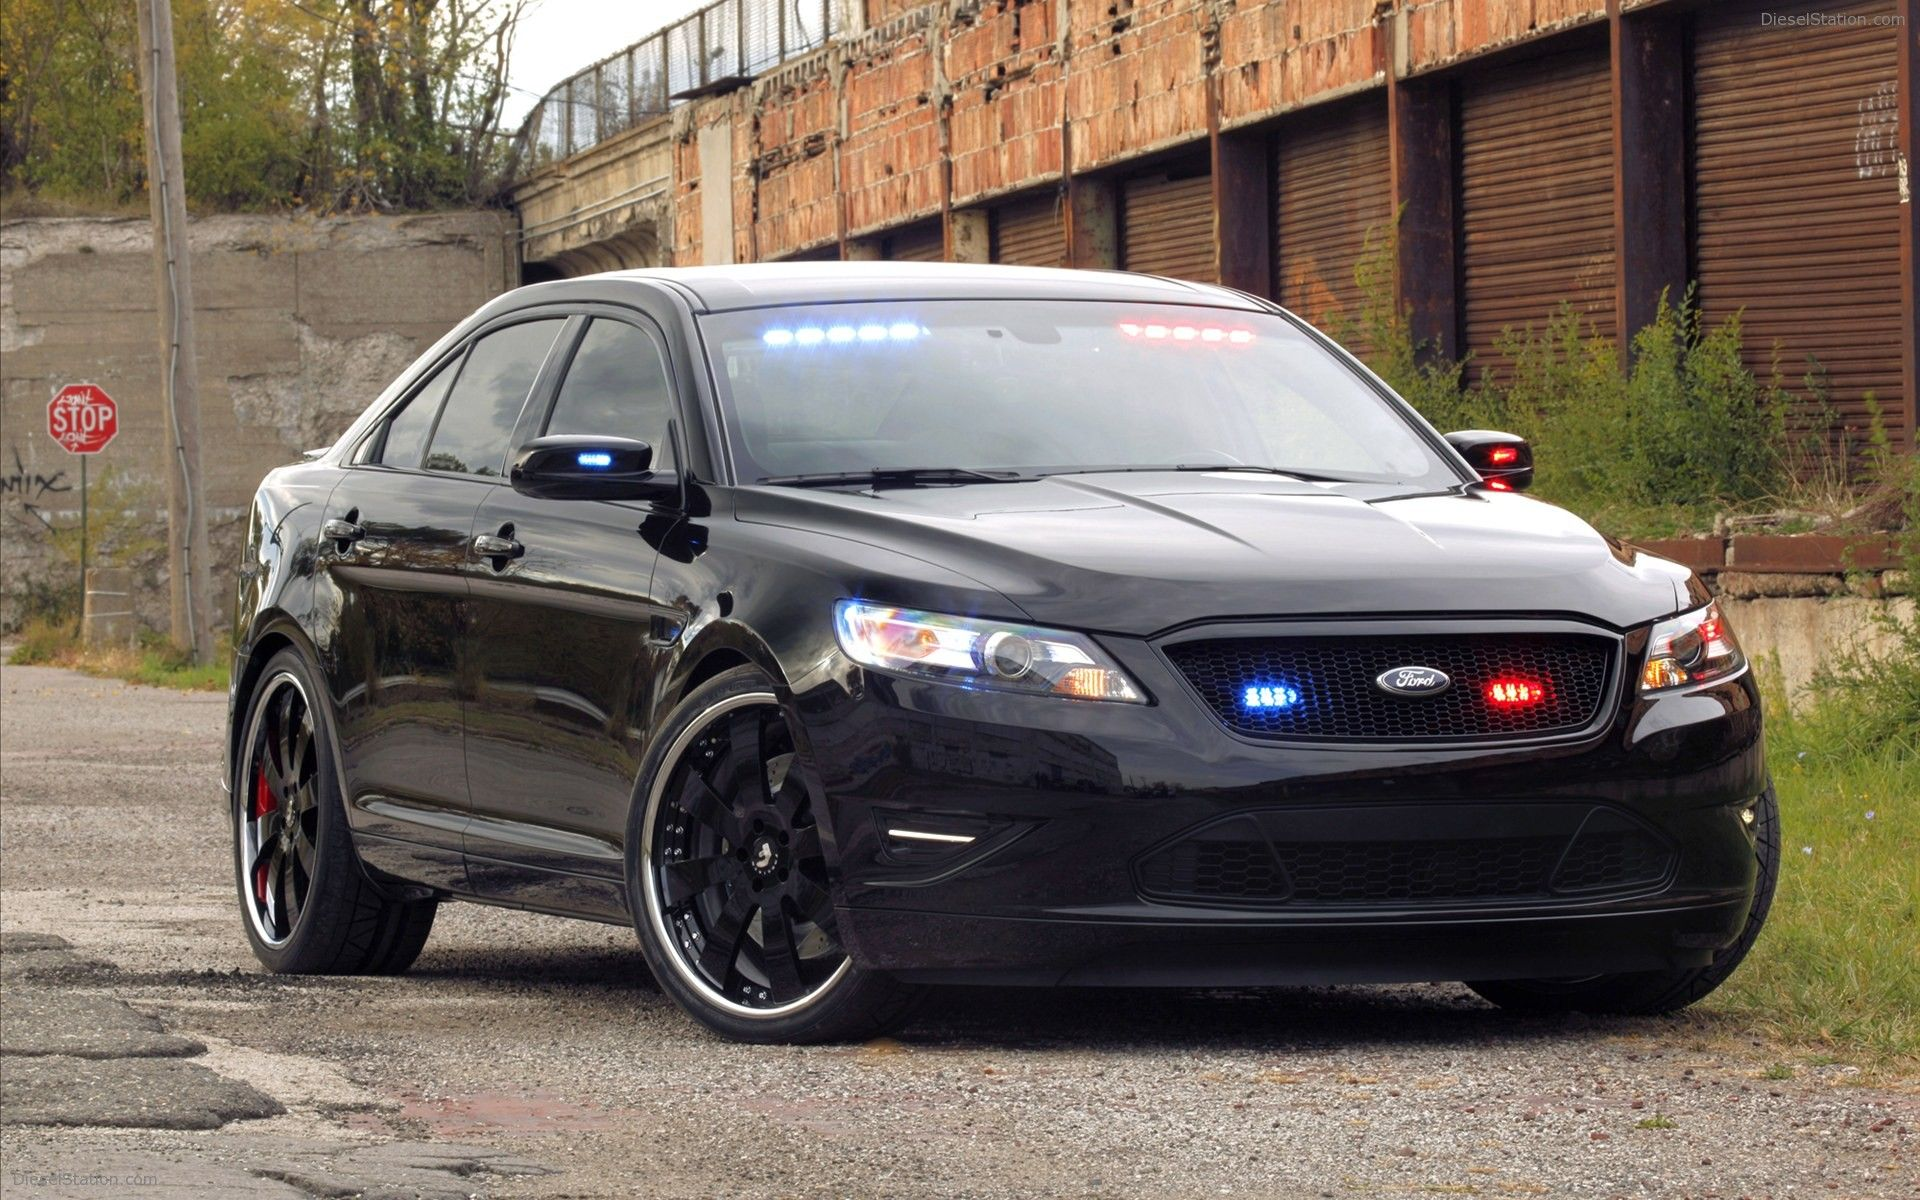 Ford Stealth Police Interceptor Concept 2010 Ford Police Ford